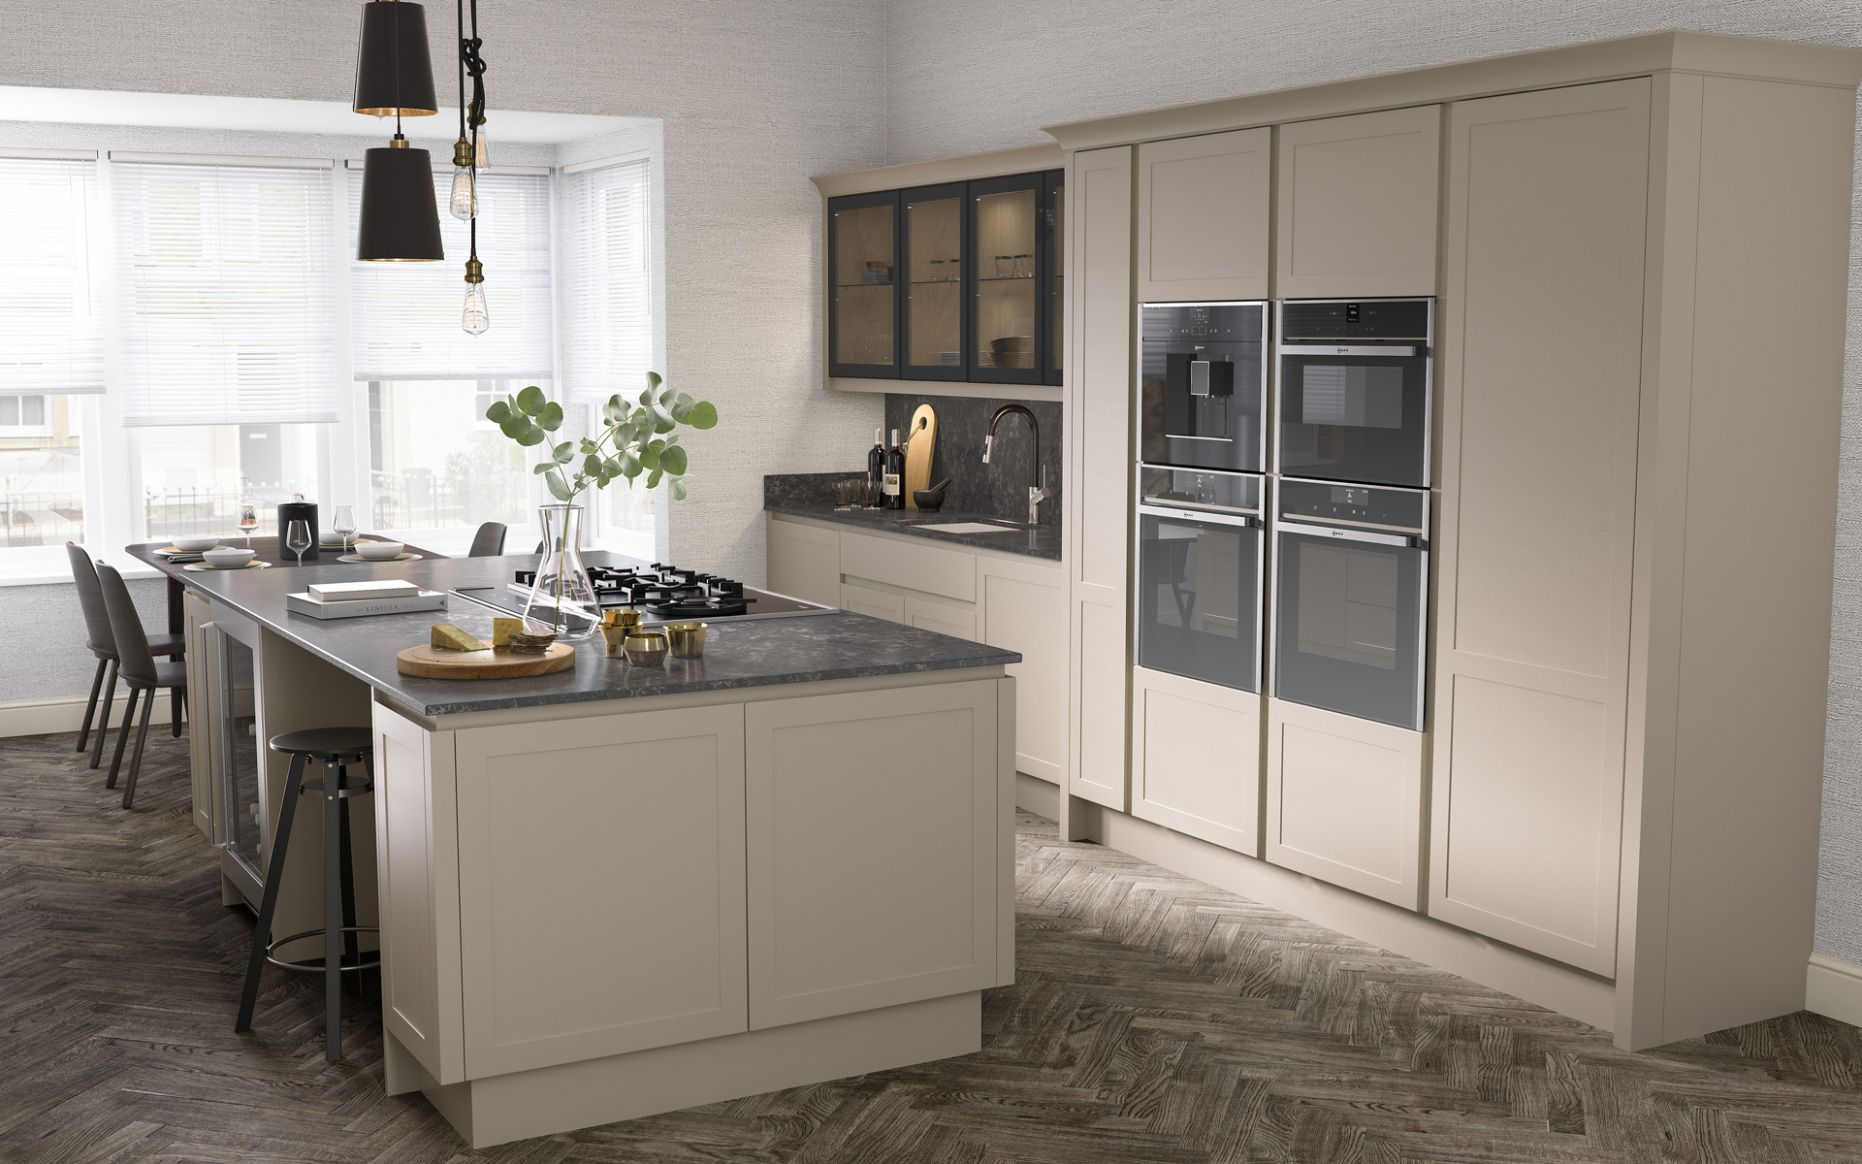 Kranston Kitchens – Experts In Kitchen & Joinery Renovations